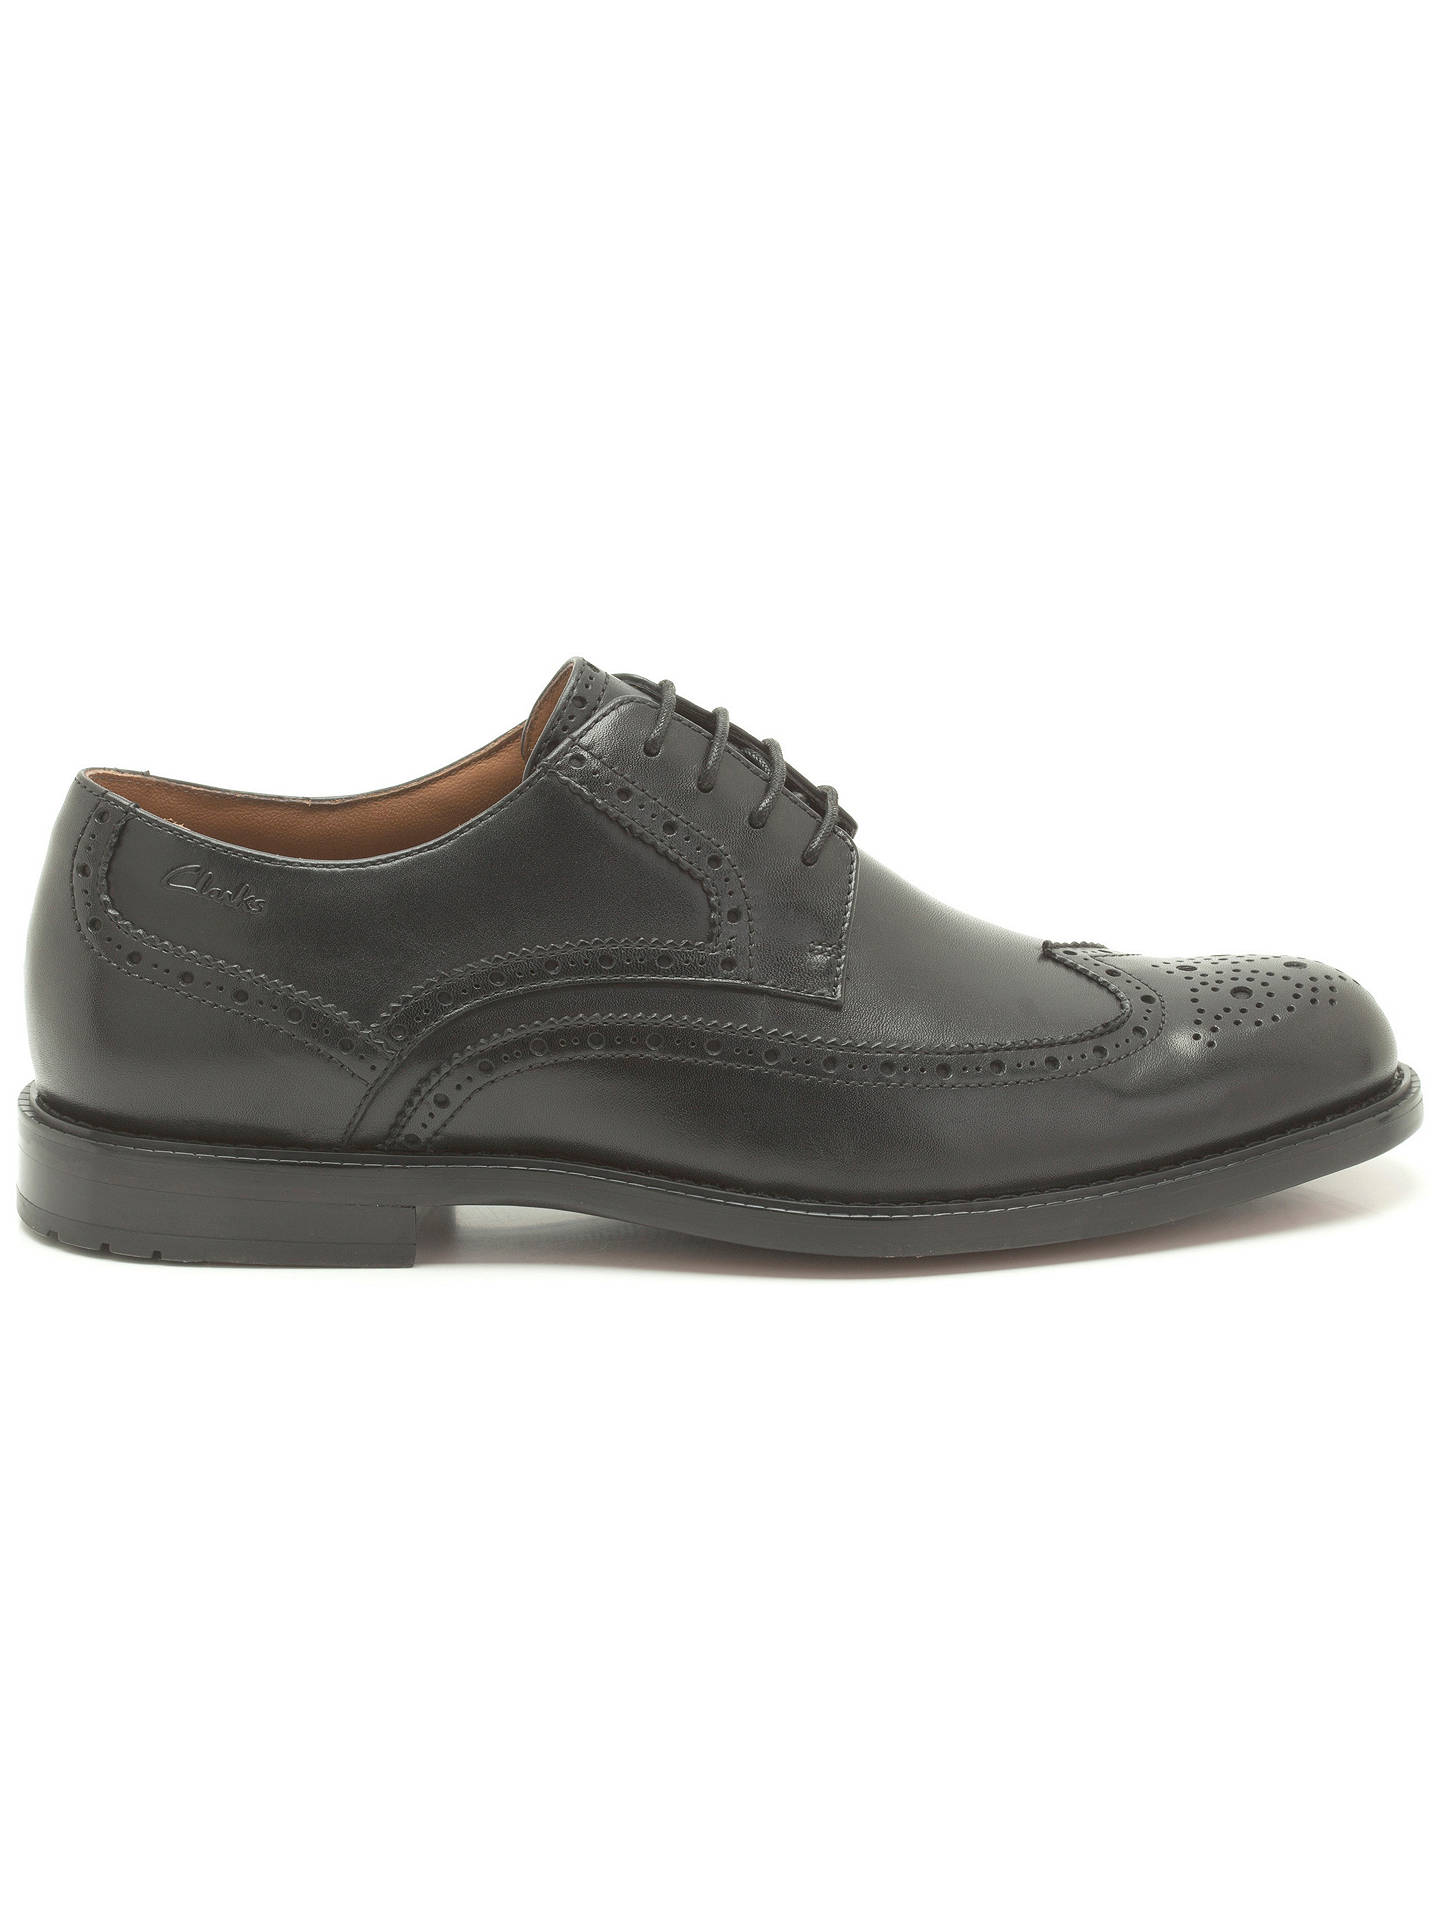 f3c9b1831b891 Clarks Dorset Limit Leather Brogue Derby Shoes, Black at John Lewis ...